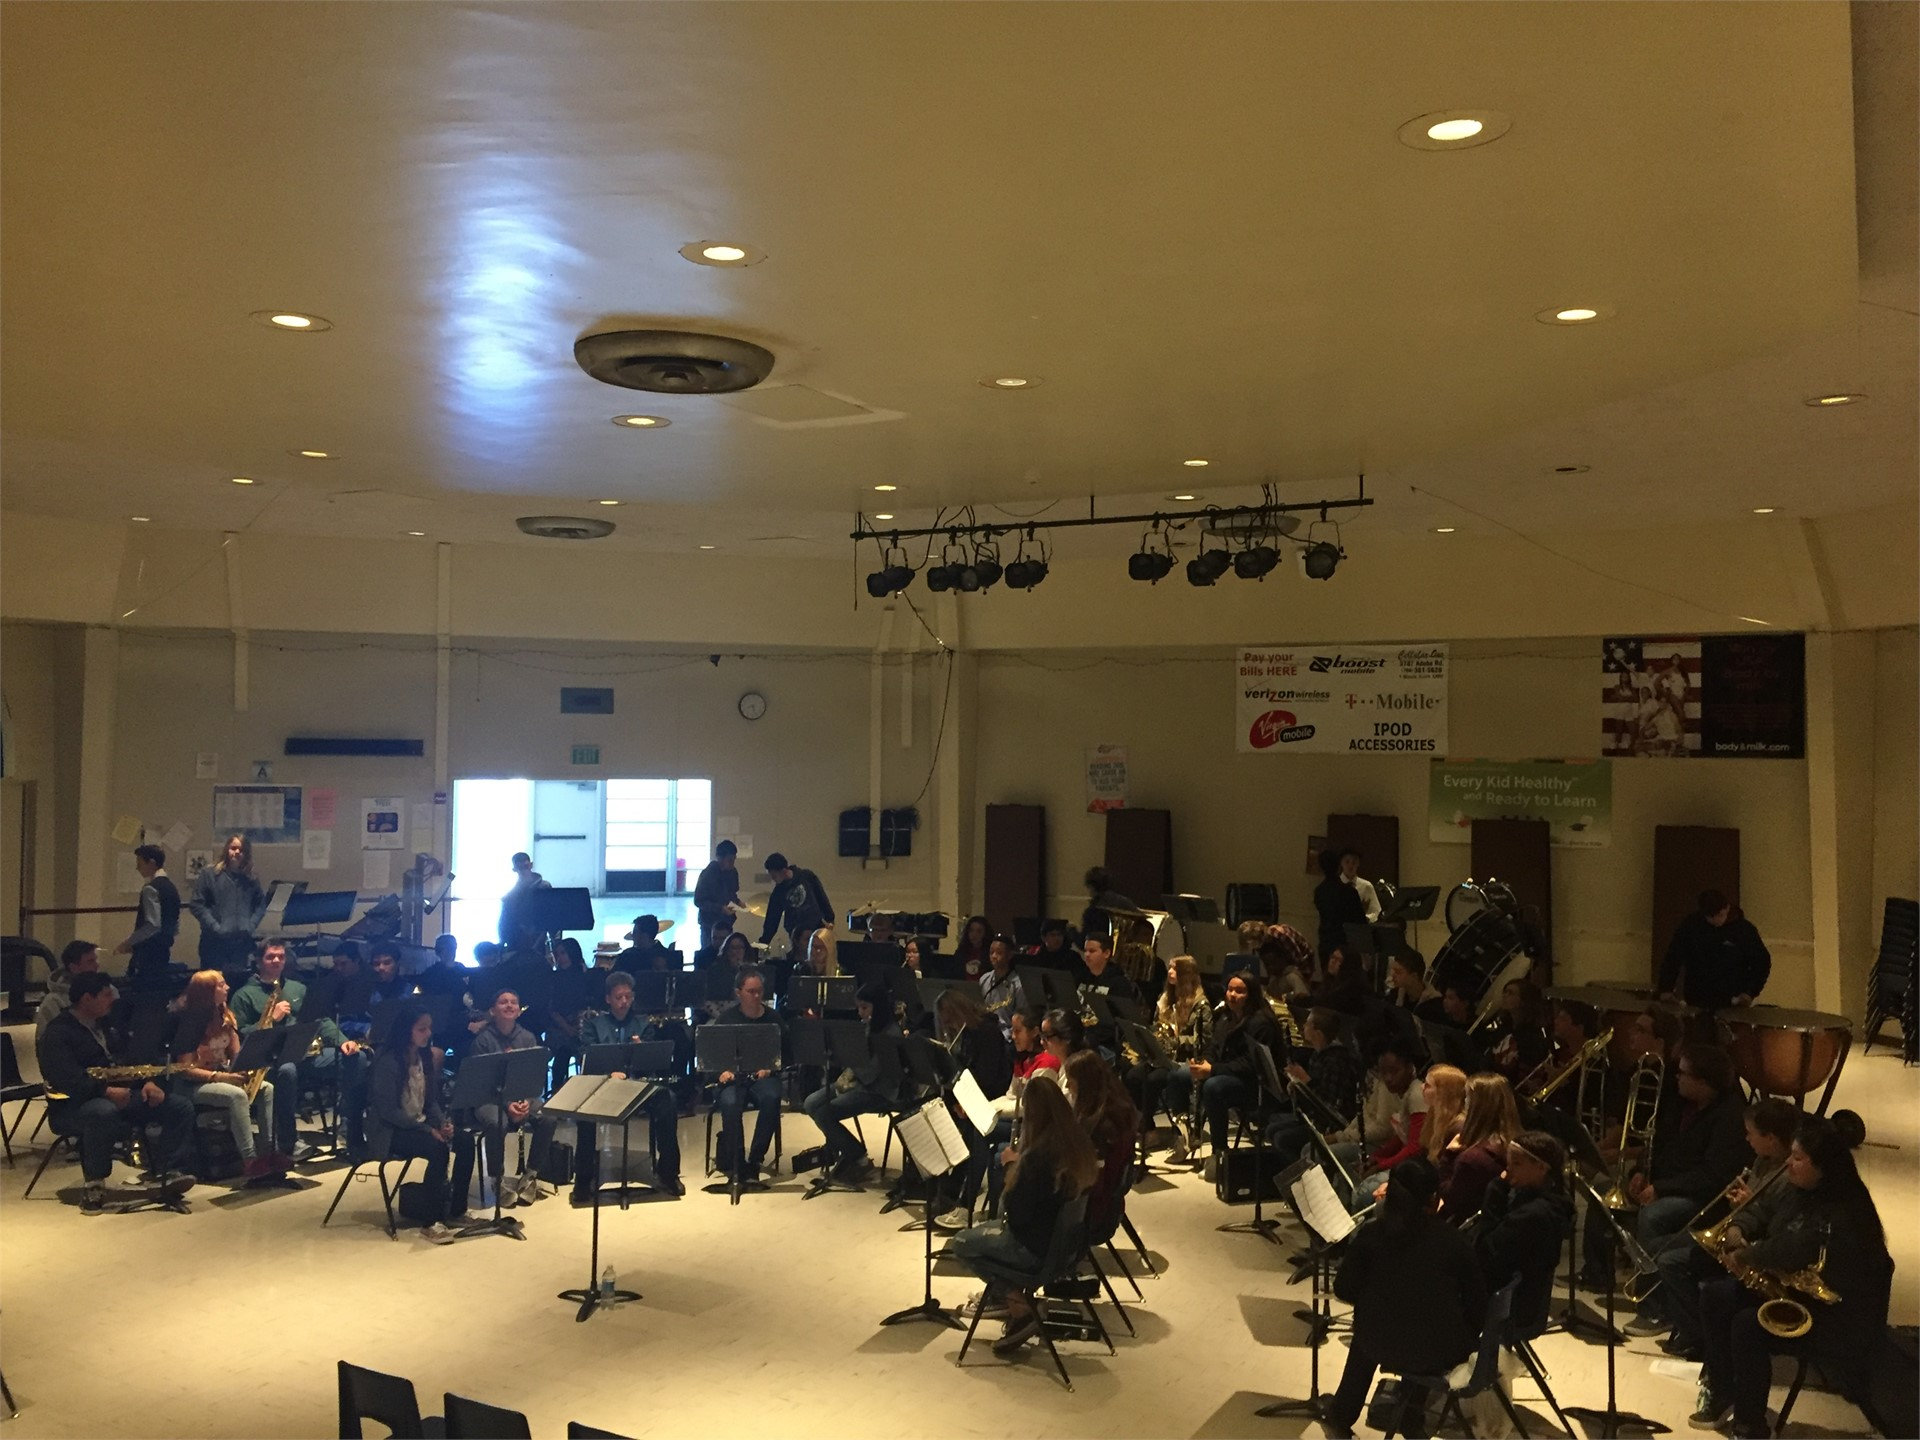 Band students from the High School and Jr High School playing music